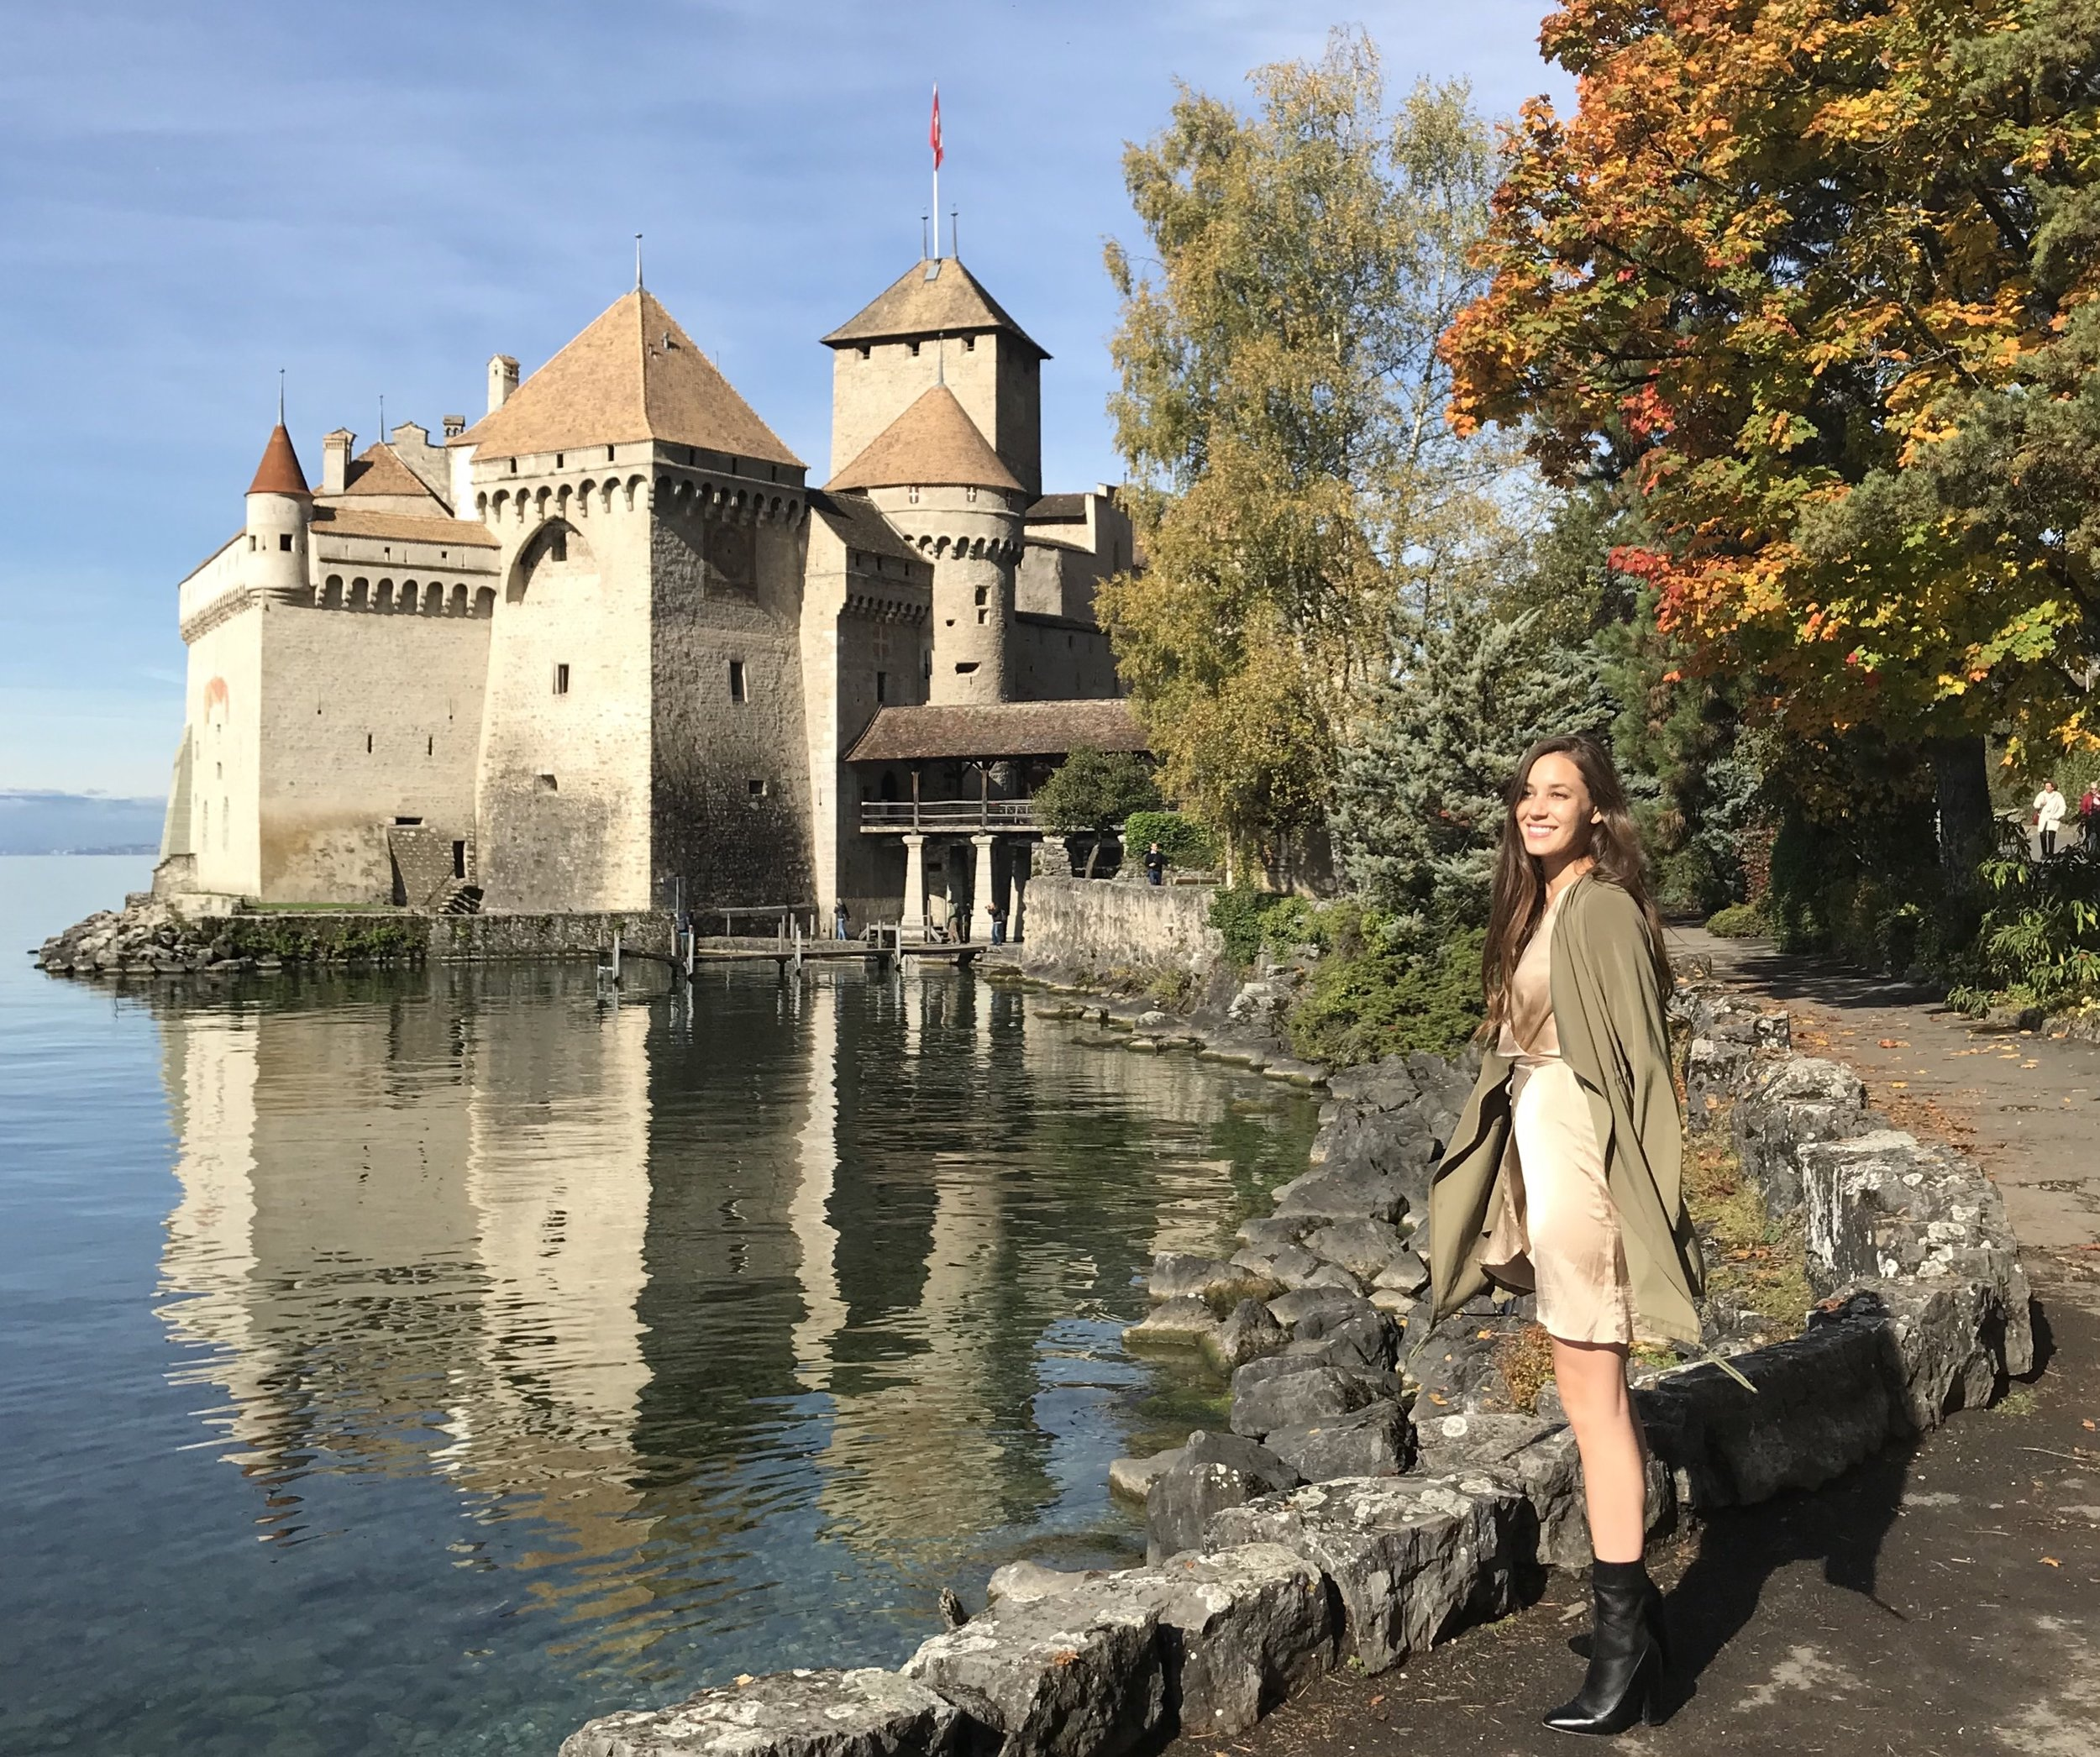 Chateau de Chillon near Montreux Switzerland